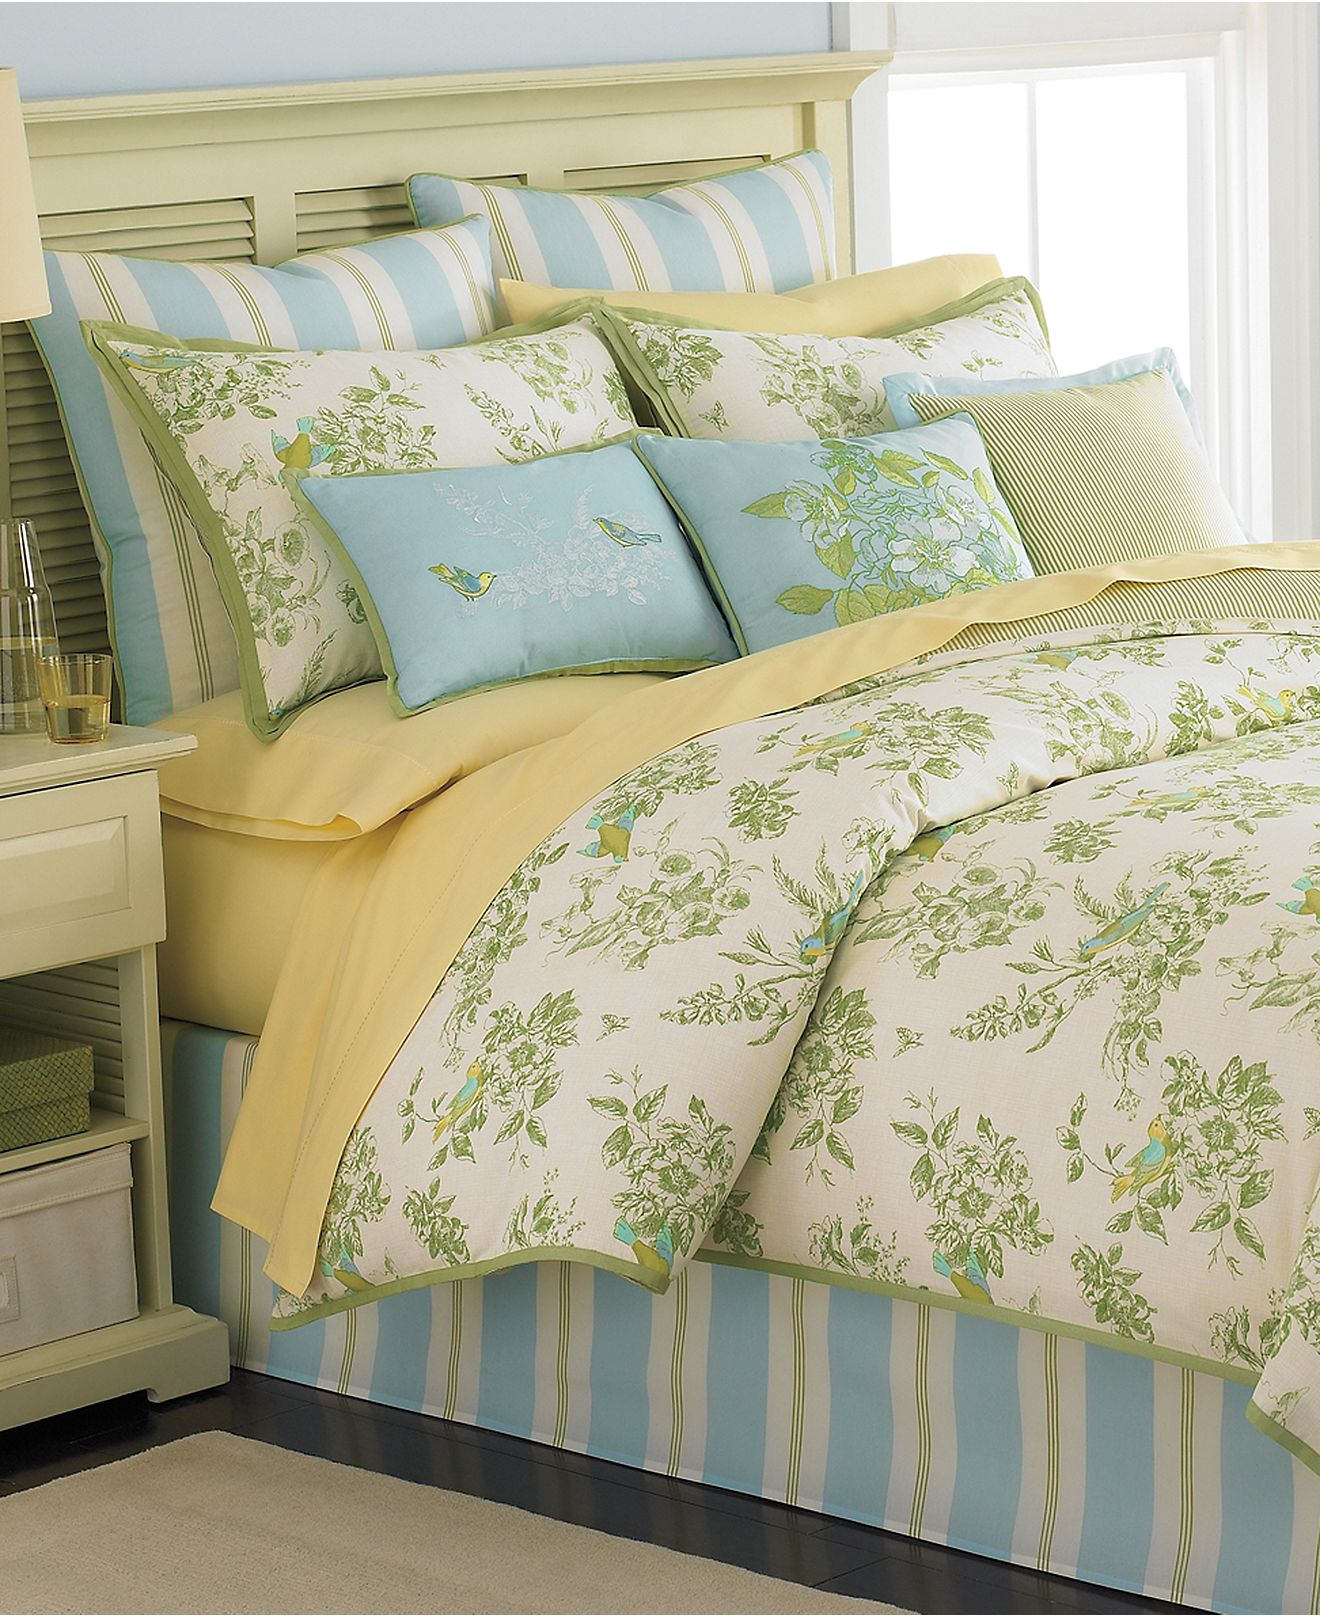 martha stewart collection bedding bluebird garden 6 piece queen comforter set ebay. Black Bedroom Furniture Sets. Home Design Ideas